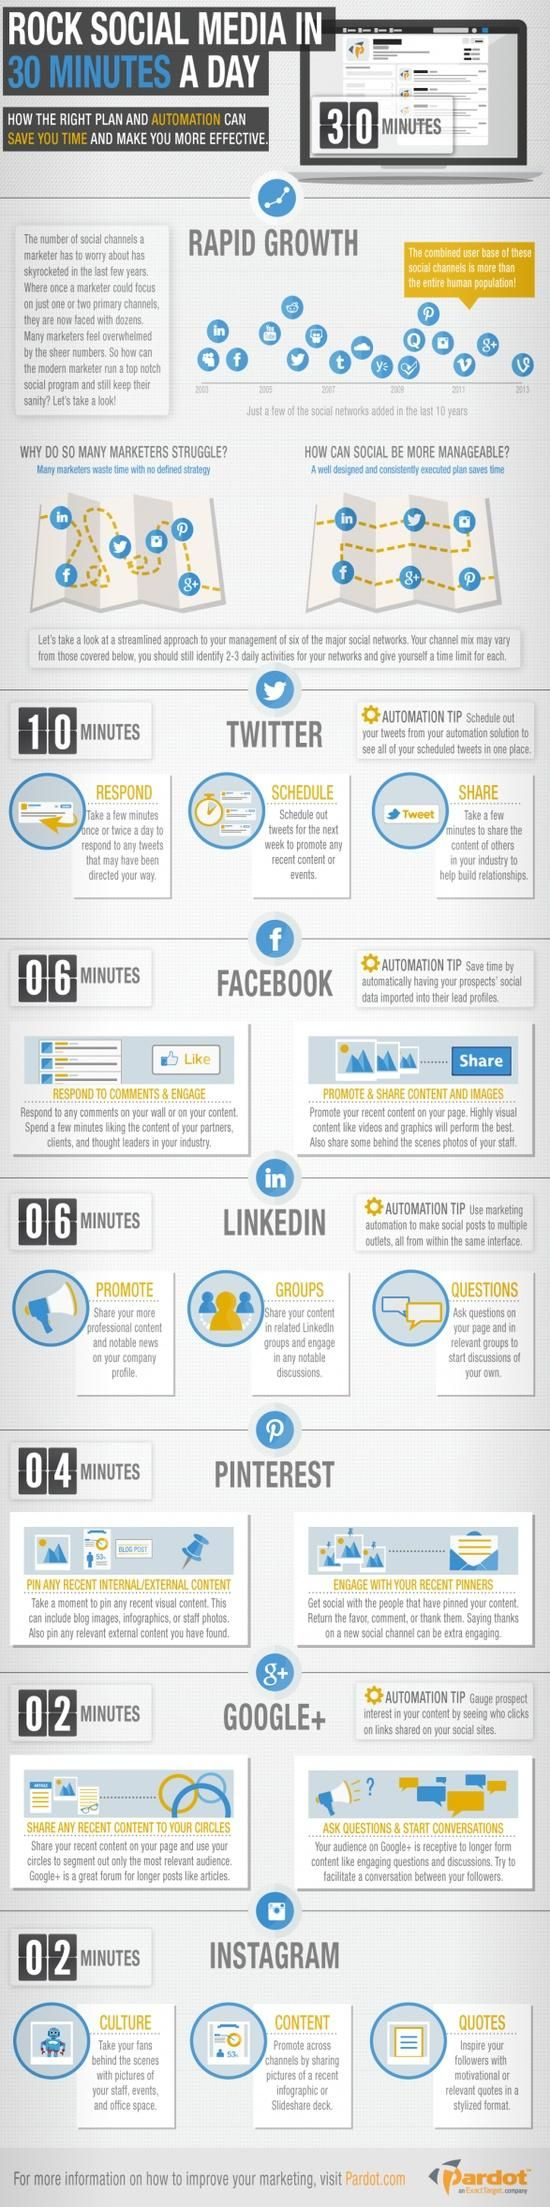 Infographic: Rock Social Media in 30 Minutes a Day